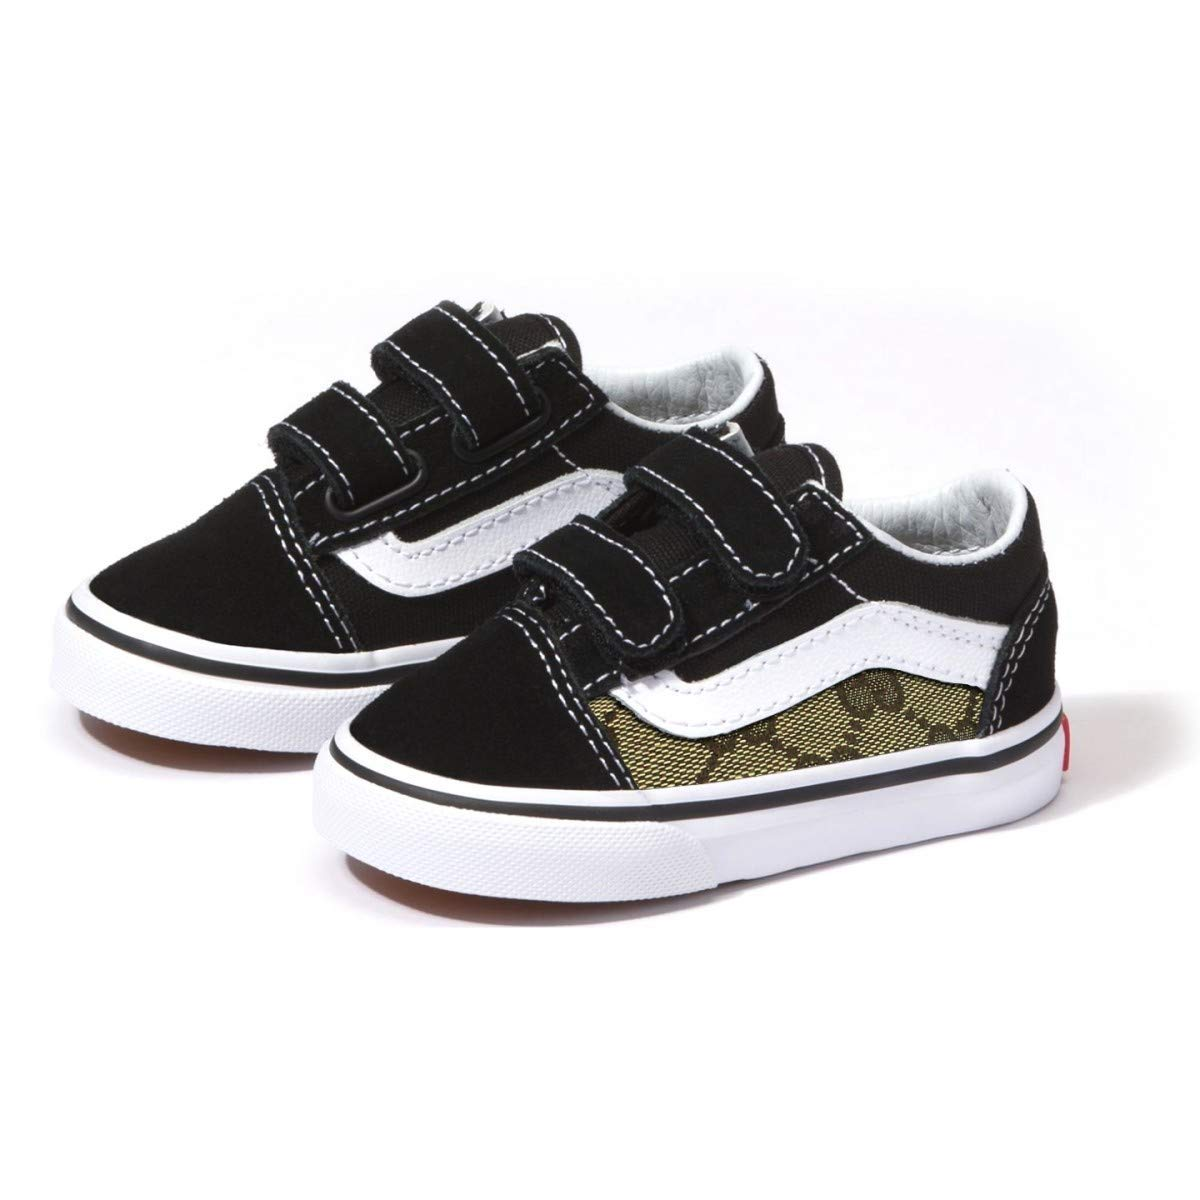 33d8898d673 Amazon.com  Vans Old Skool x Gucci Custom Handmade Uni-Sex Toddlers Shoes  By Patch Collection  Handmade